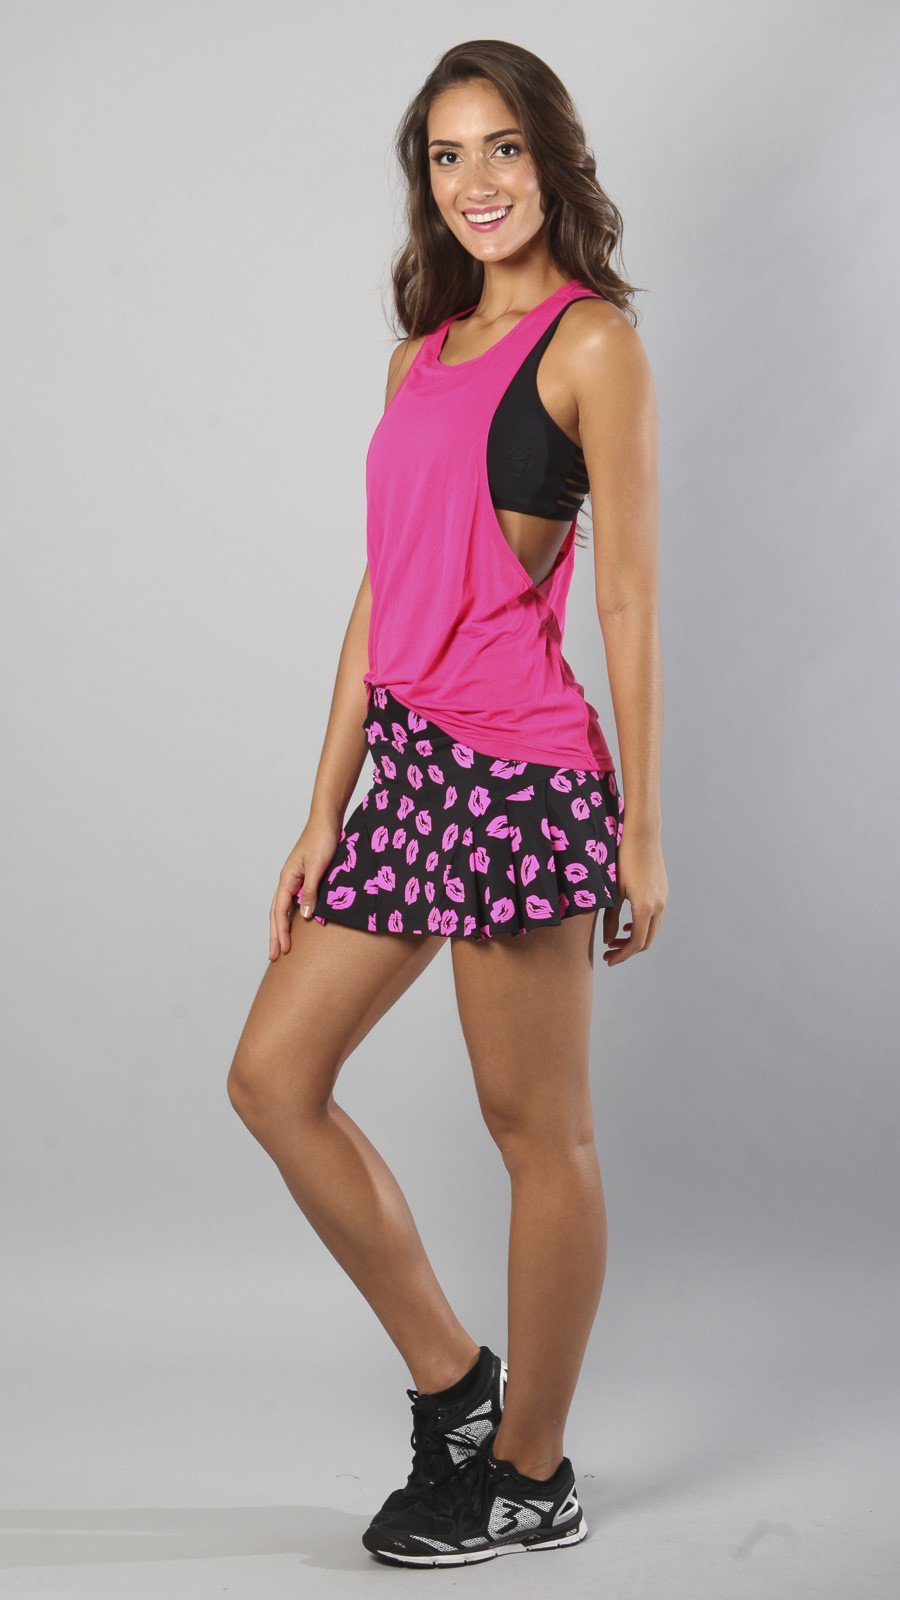 Designer Kisses Pink and Black Skort S520 - Equilibrium Activewear - Image 5